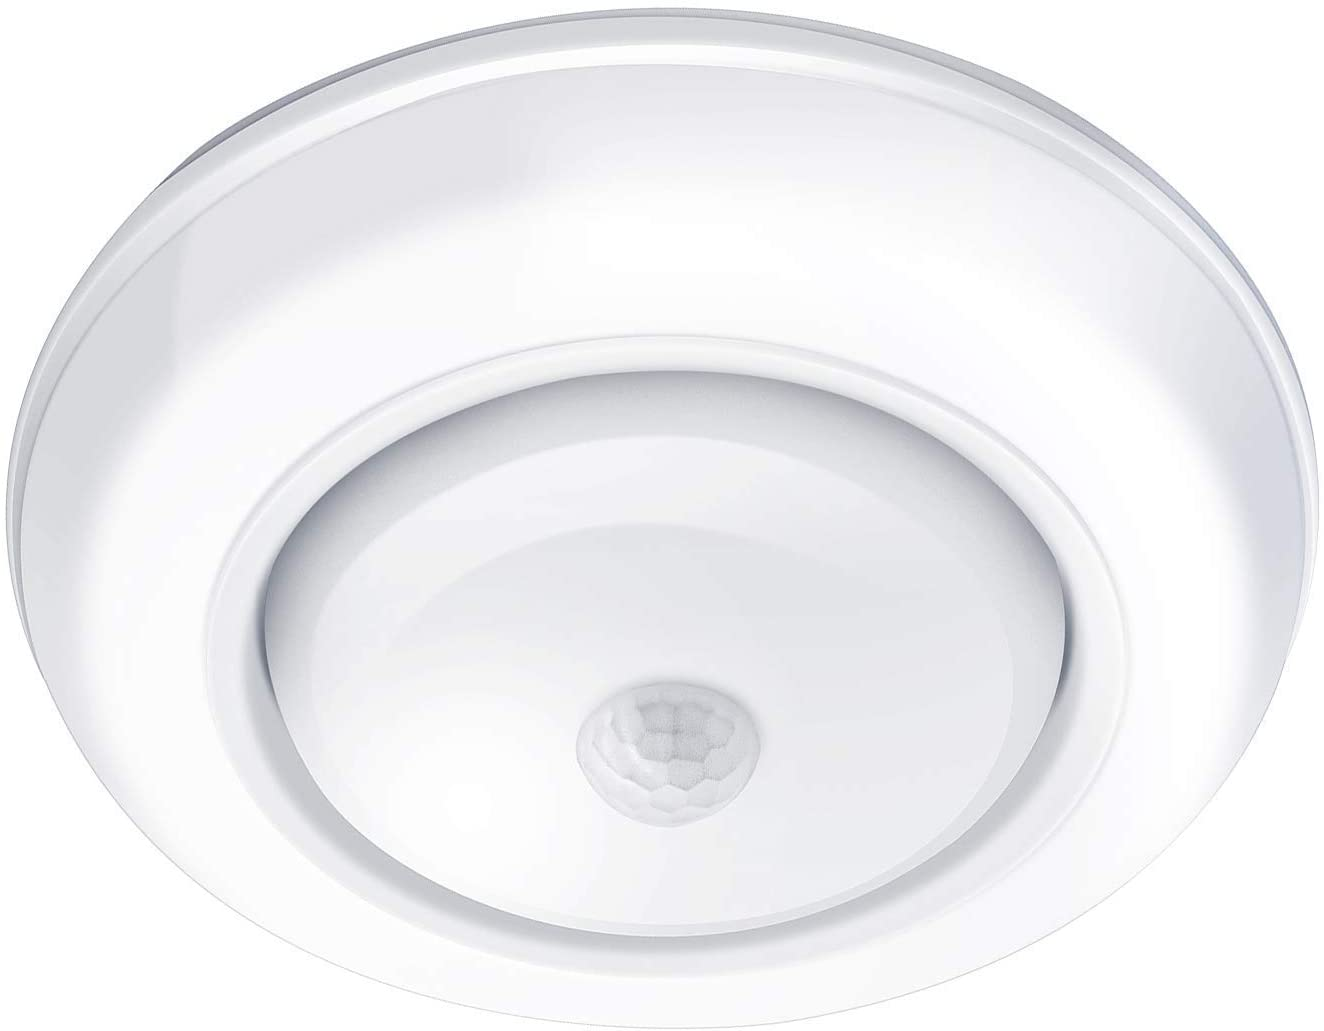 Ceiling light with photocell